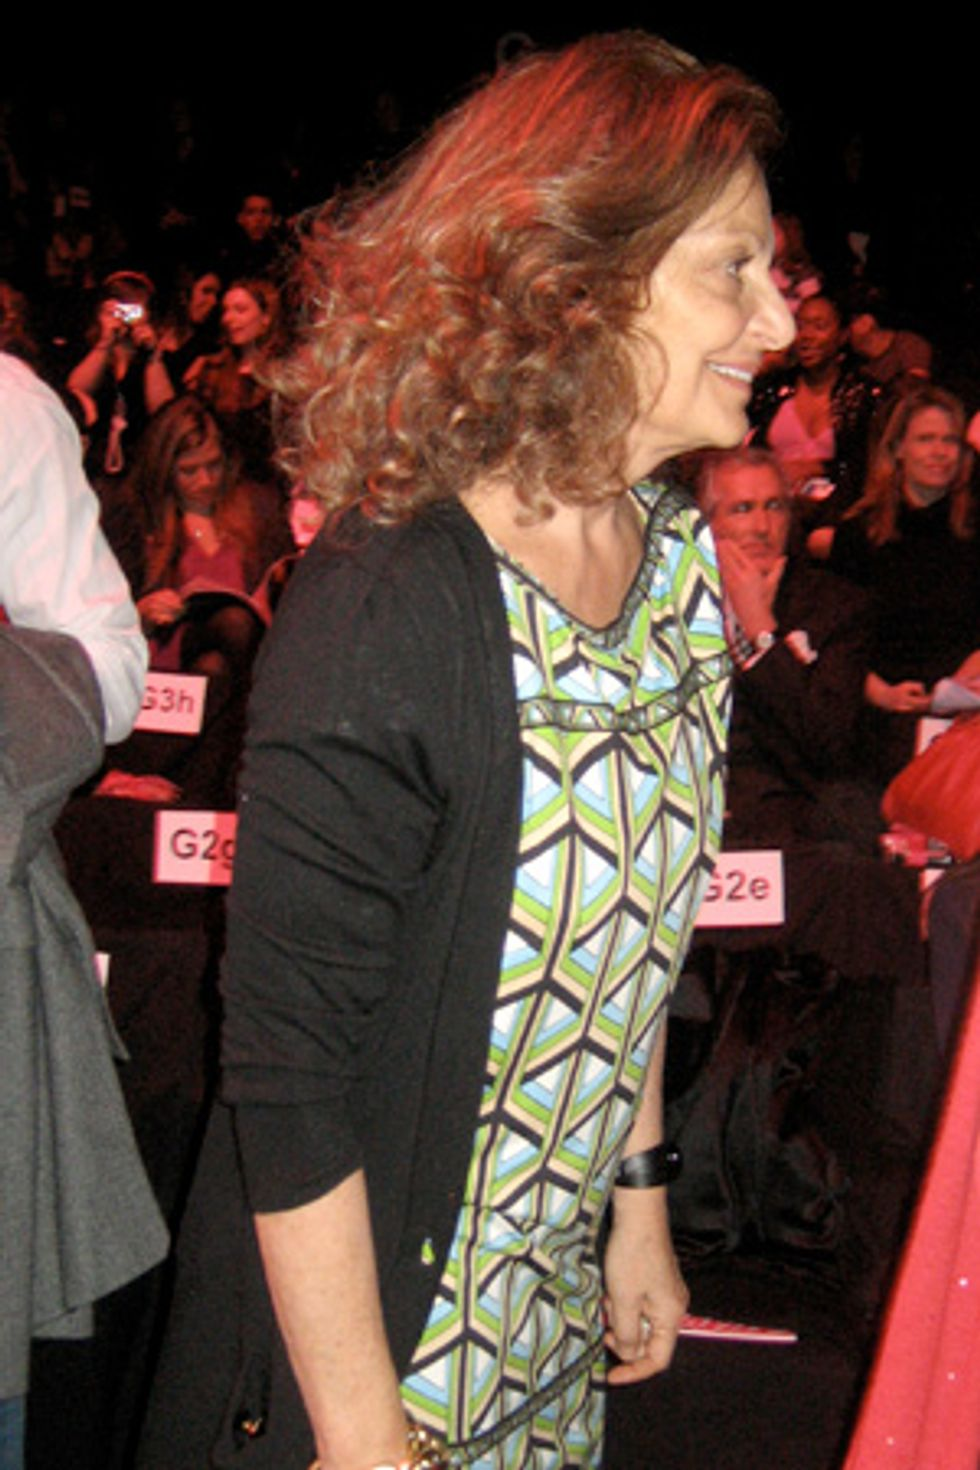 A Quick Chit-Chat With Diane von Furstenberg at the Barbie Show